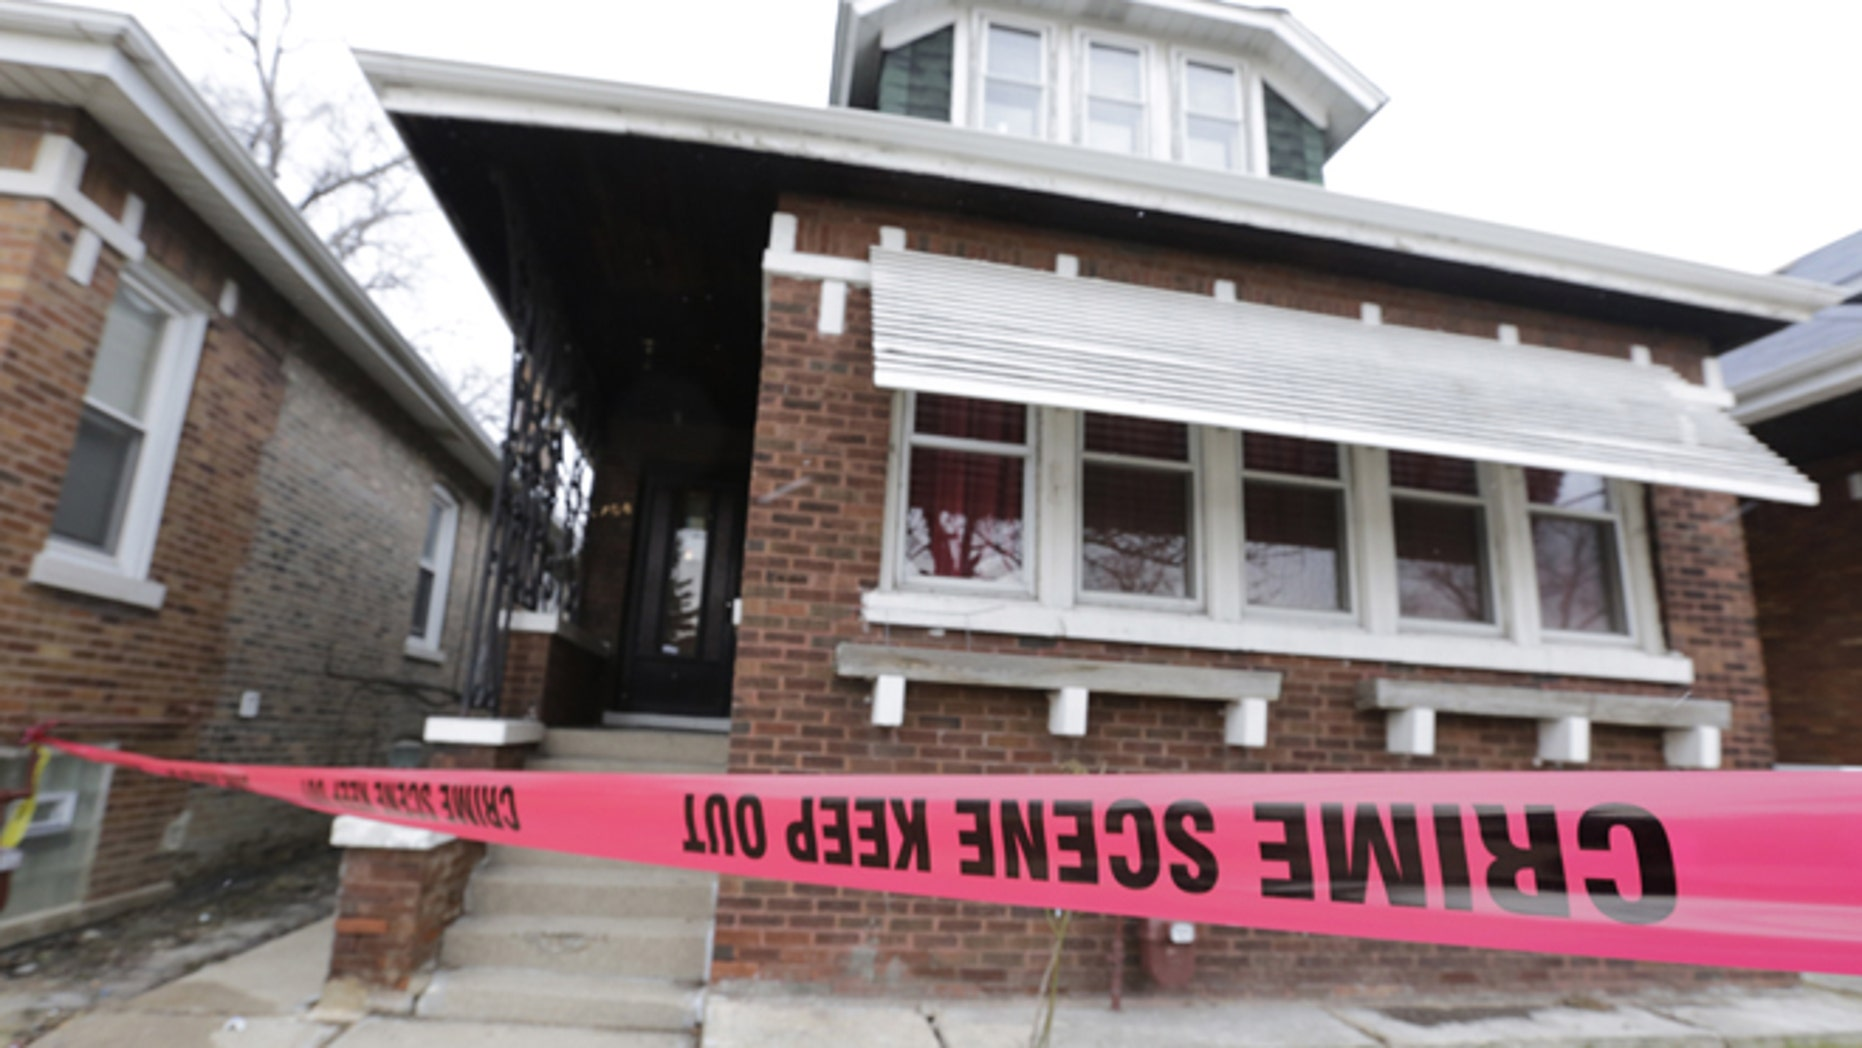 Feb. 5, 2016,: Crime scene tape surrounds a home in Chicago. (AP Photo/M. Spencer Green)